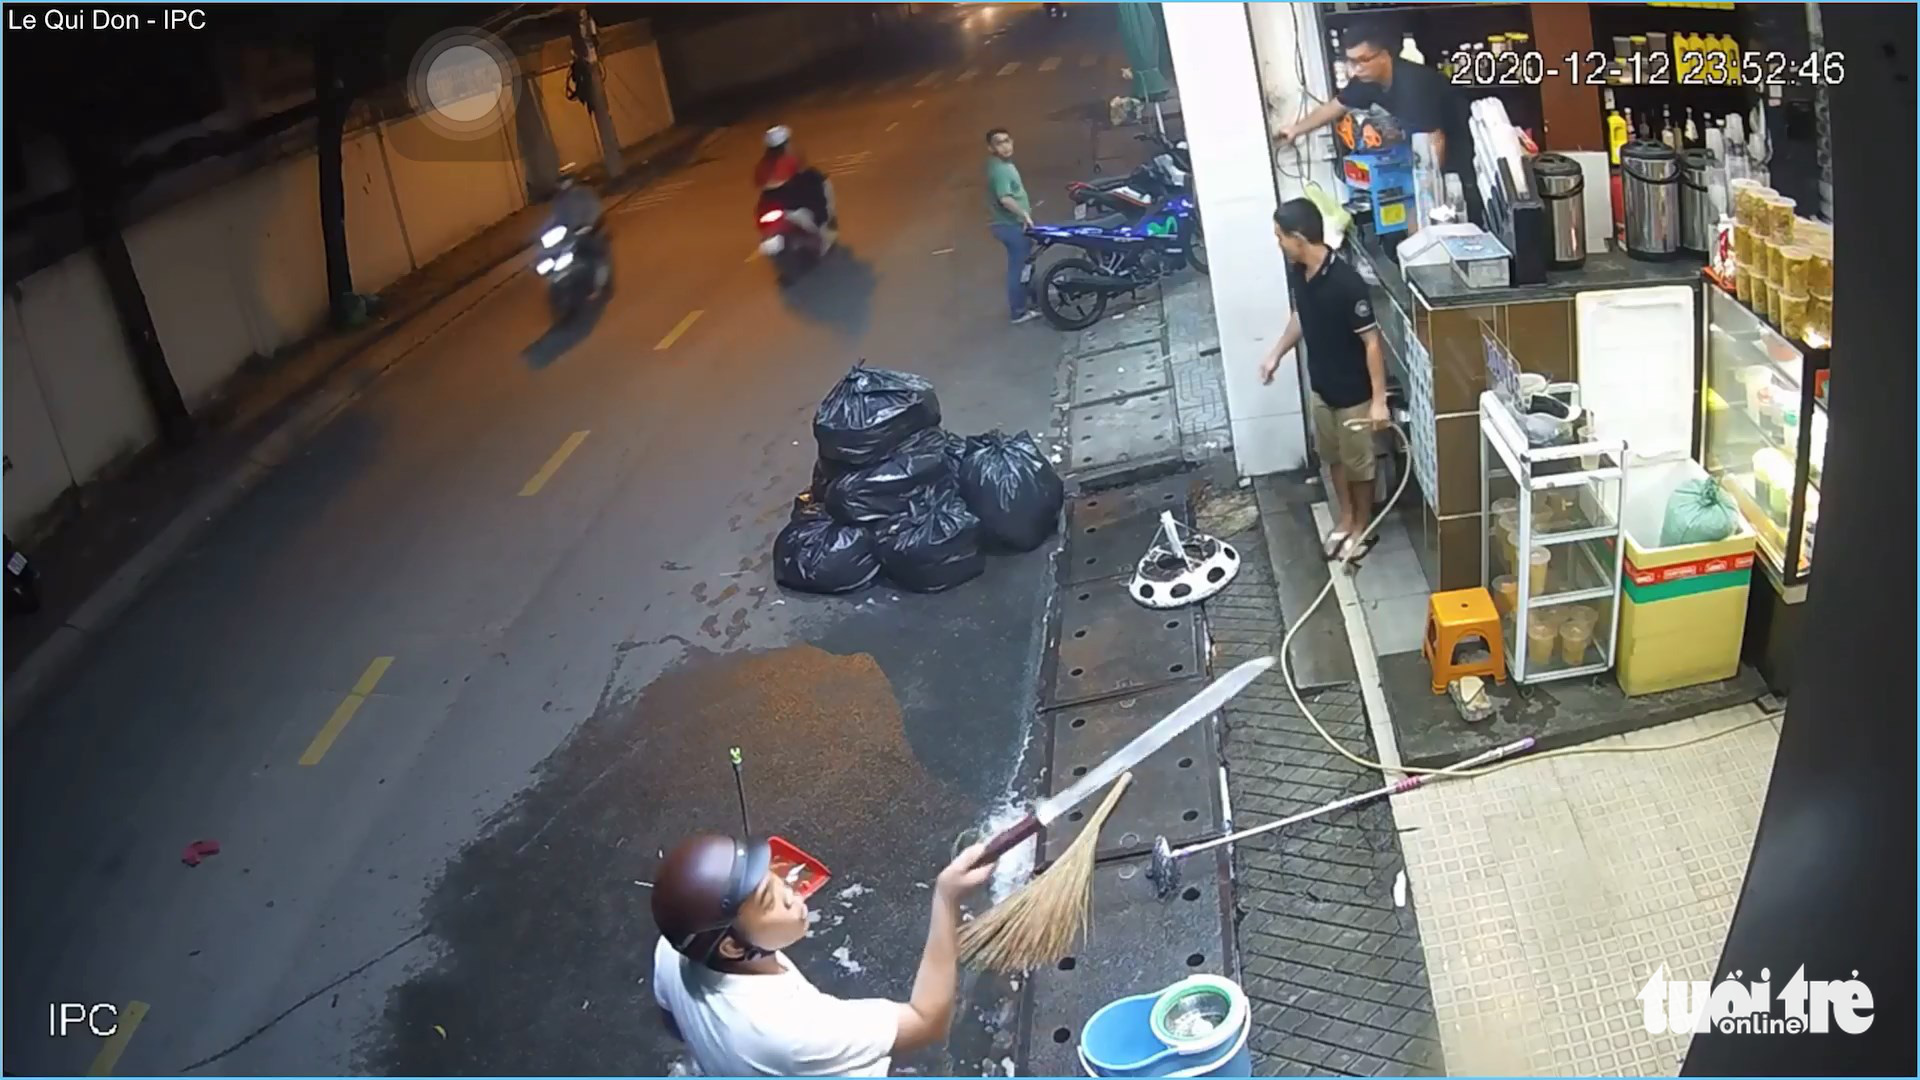 Man threatens bystanders with machete after brutally beating woman in Ho Chi Minh City